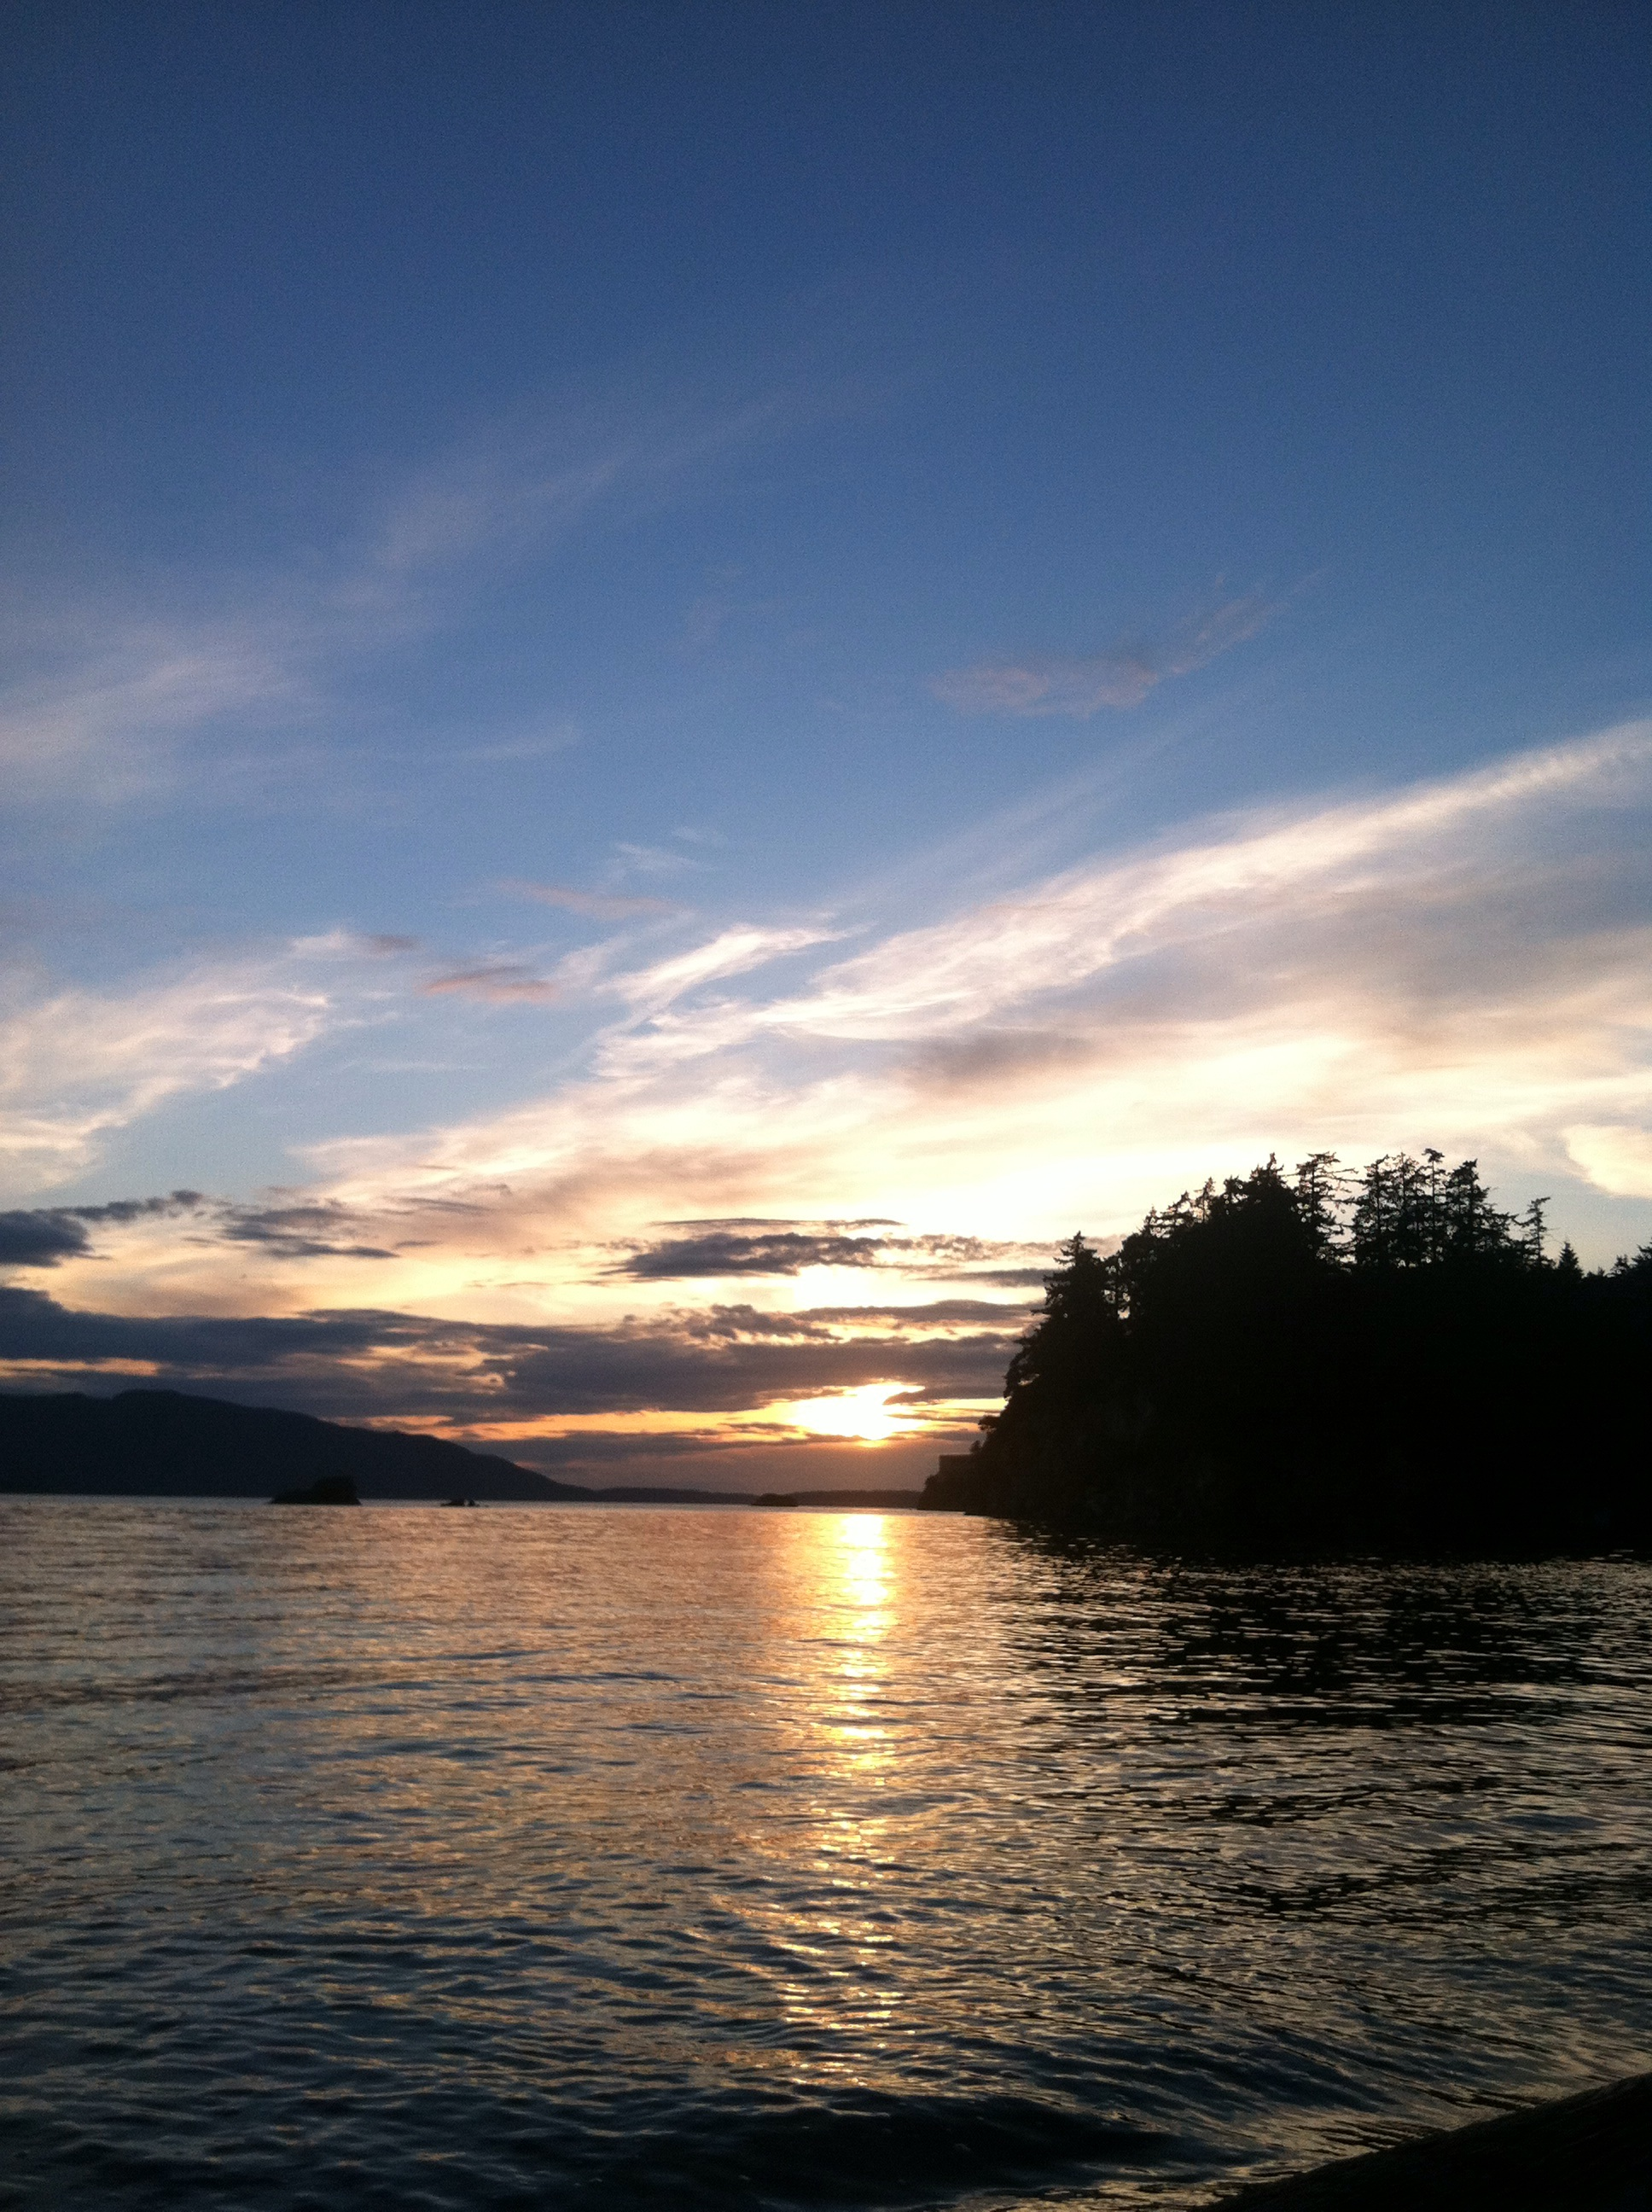 Sunset over the Puget Sound.